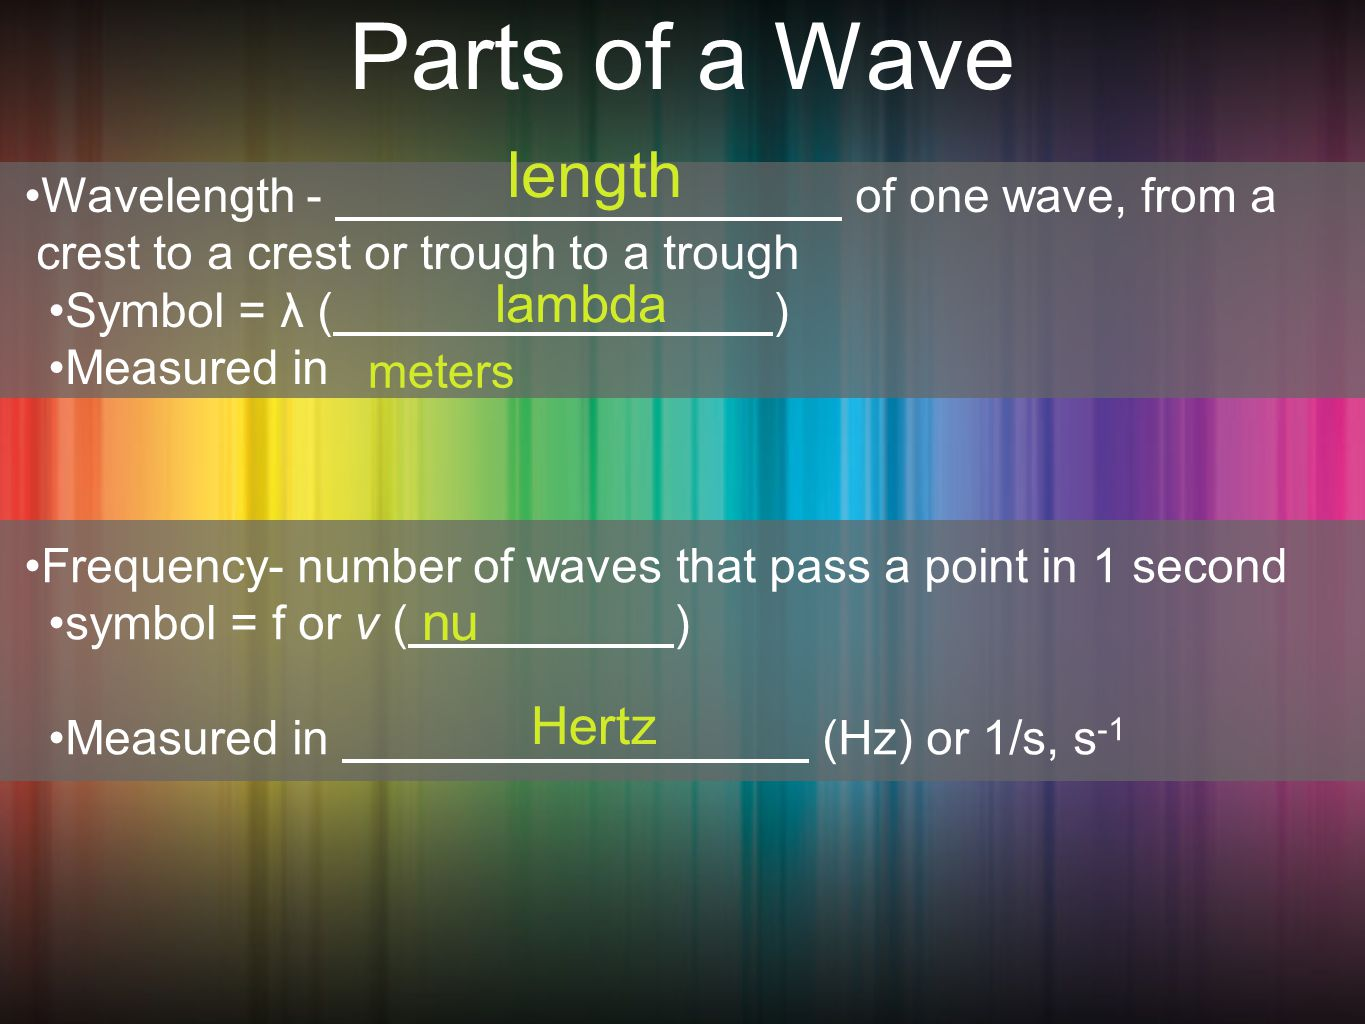 Parts of a Wave Wavelength - of one wave, from a crest to a crest or trough to a trough Symbol = λ ( ) Measured in Frequency- number of waves that pass a point in 1 second symbol = f or v ( ) Measured in (Hz) or 1/s, s -1 length lambda meters nu Hertz